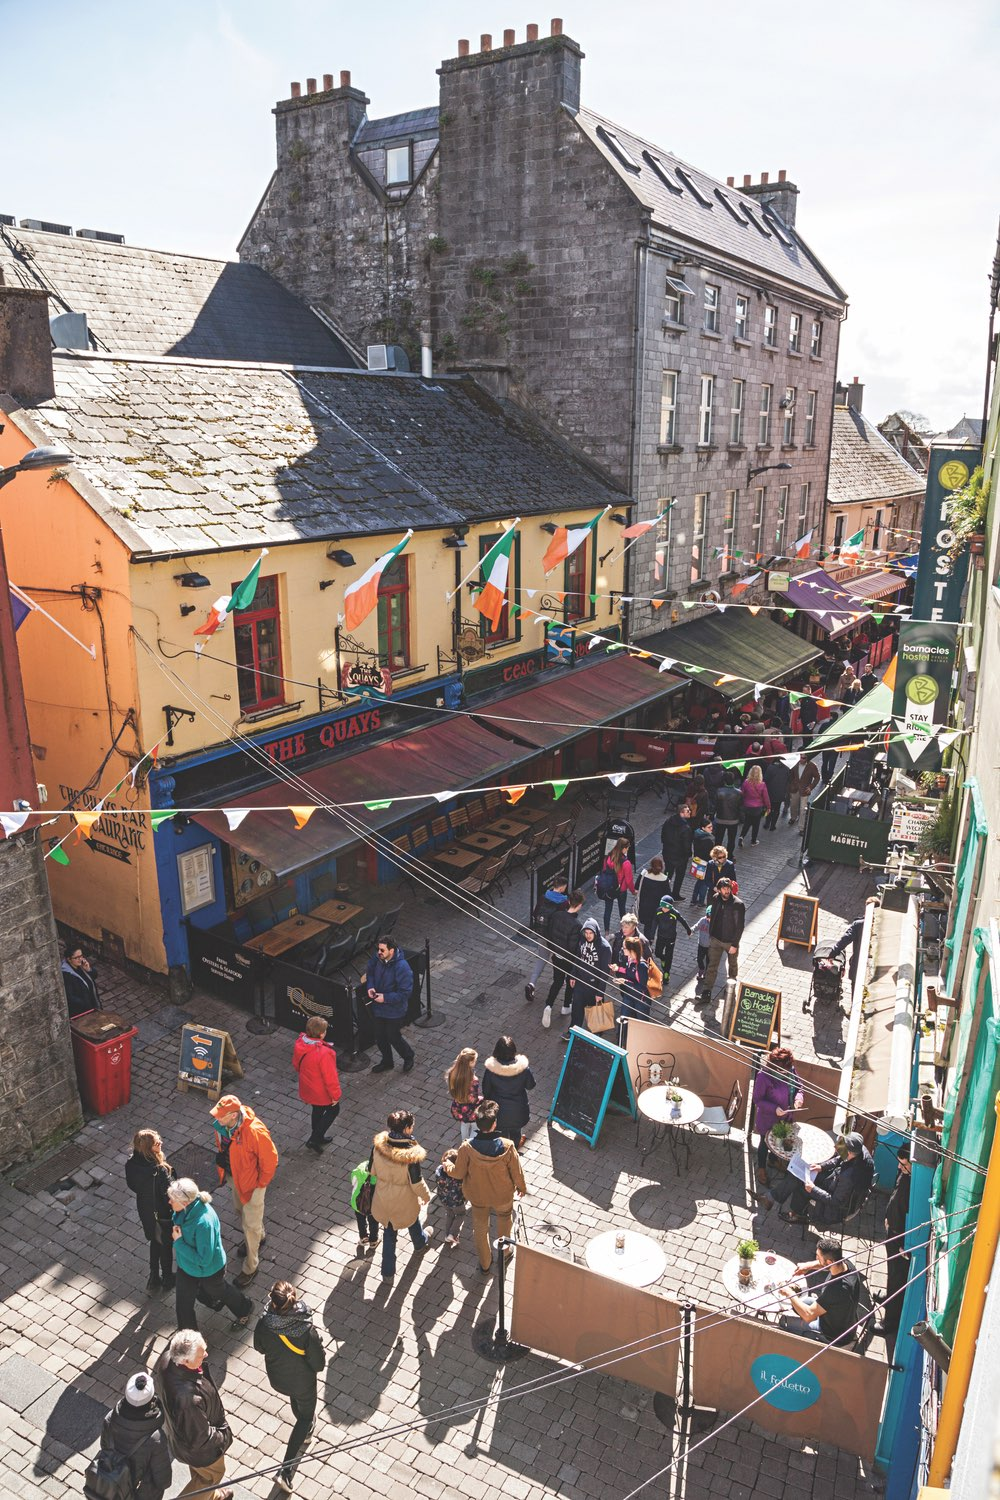 Galway's pedestrian laneways are full to the brim with pubs and cafes. Photo by Nicholas Grundy